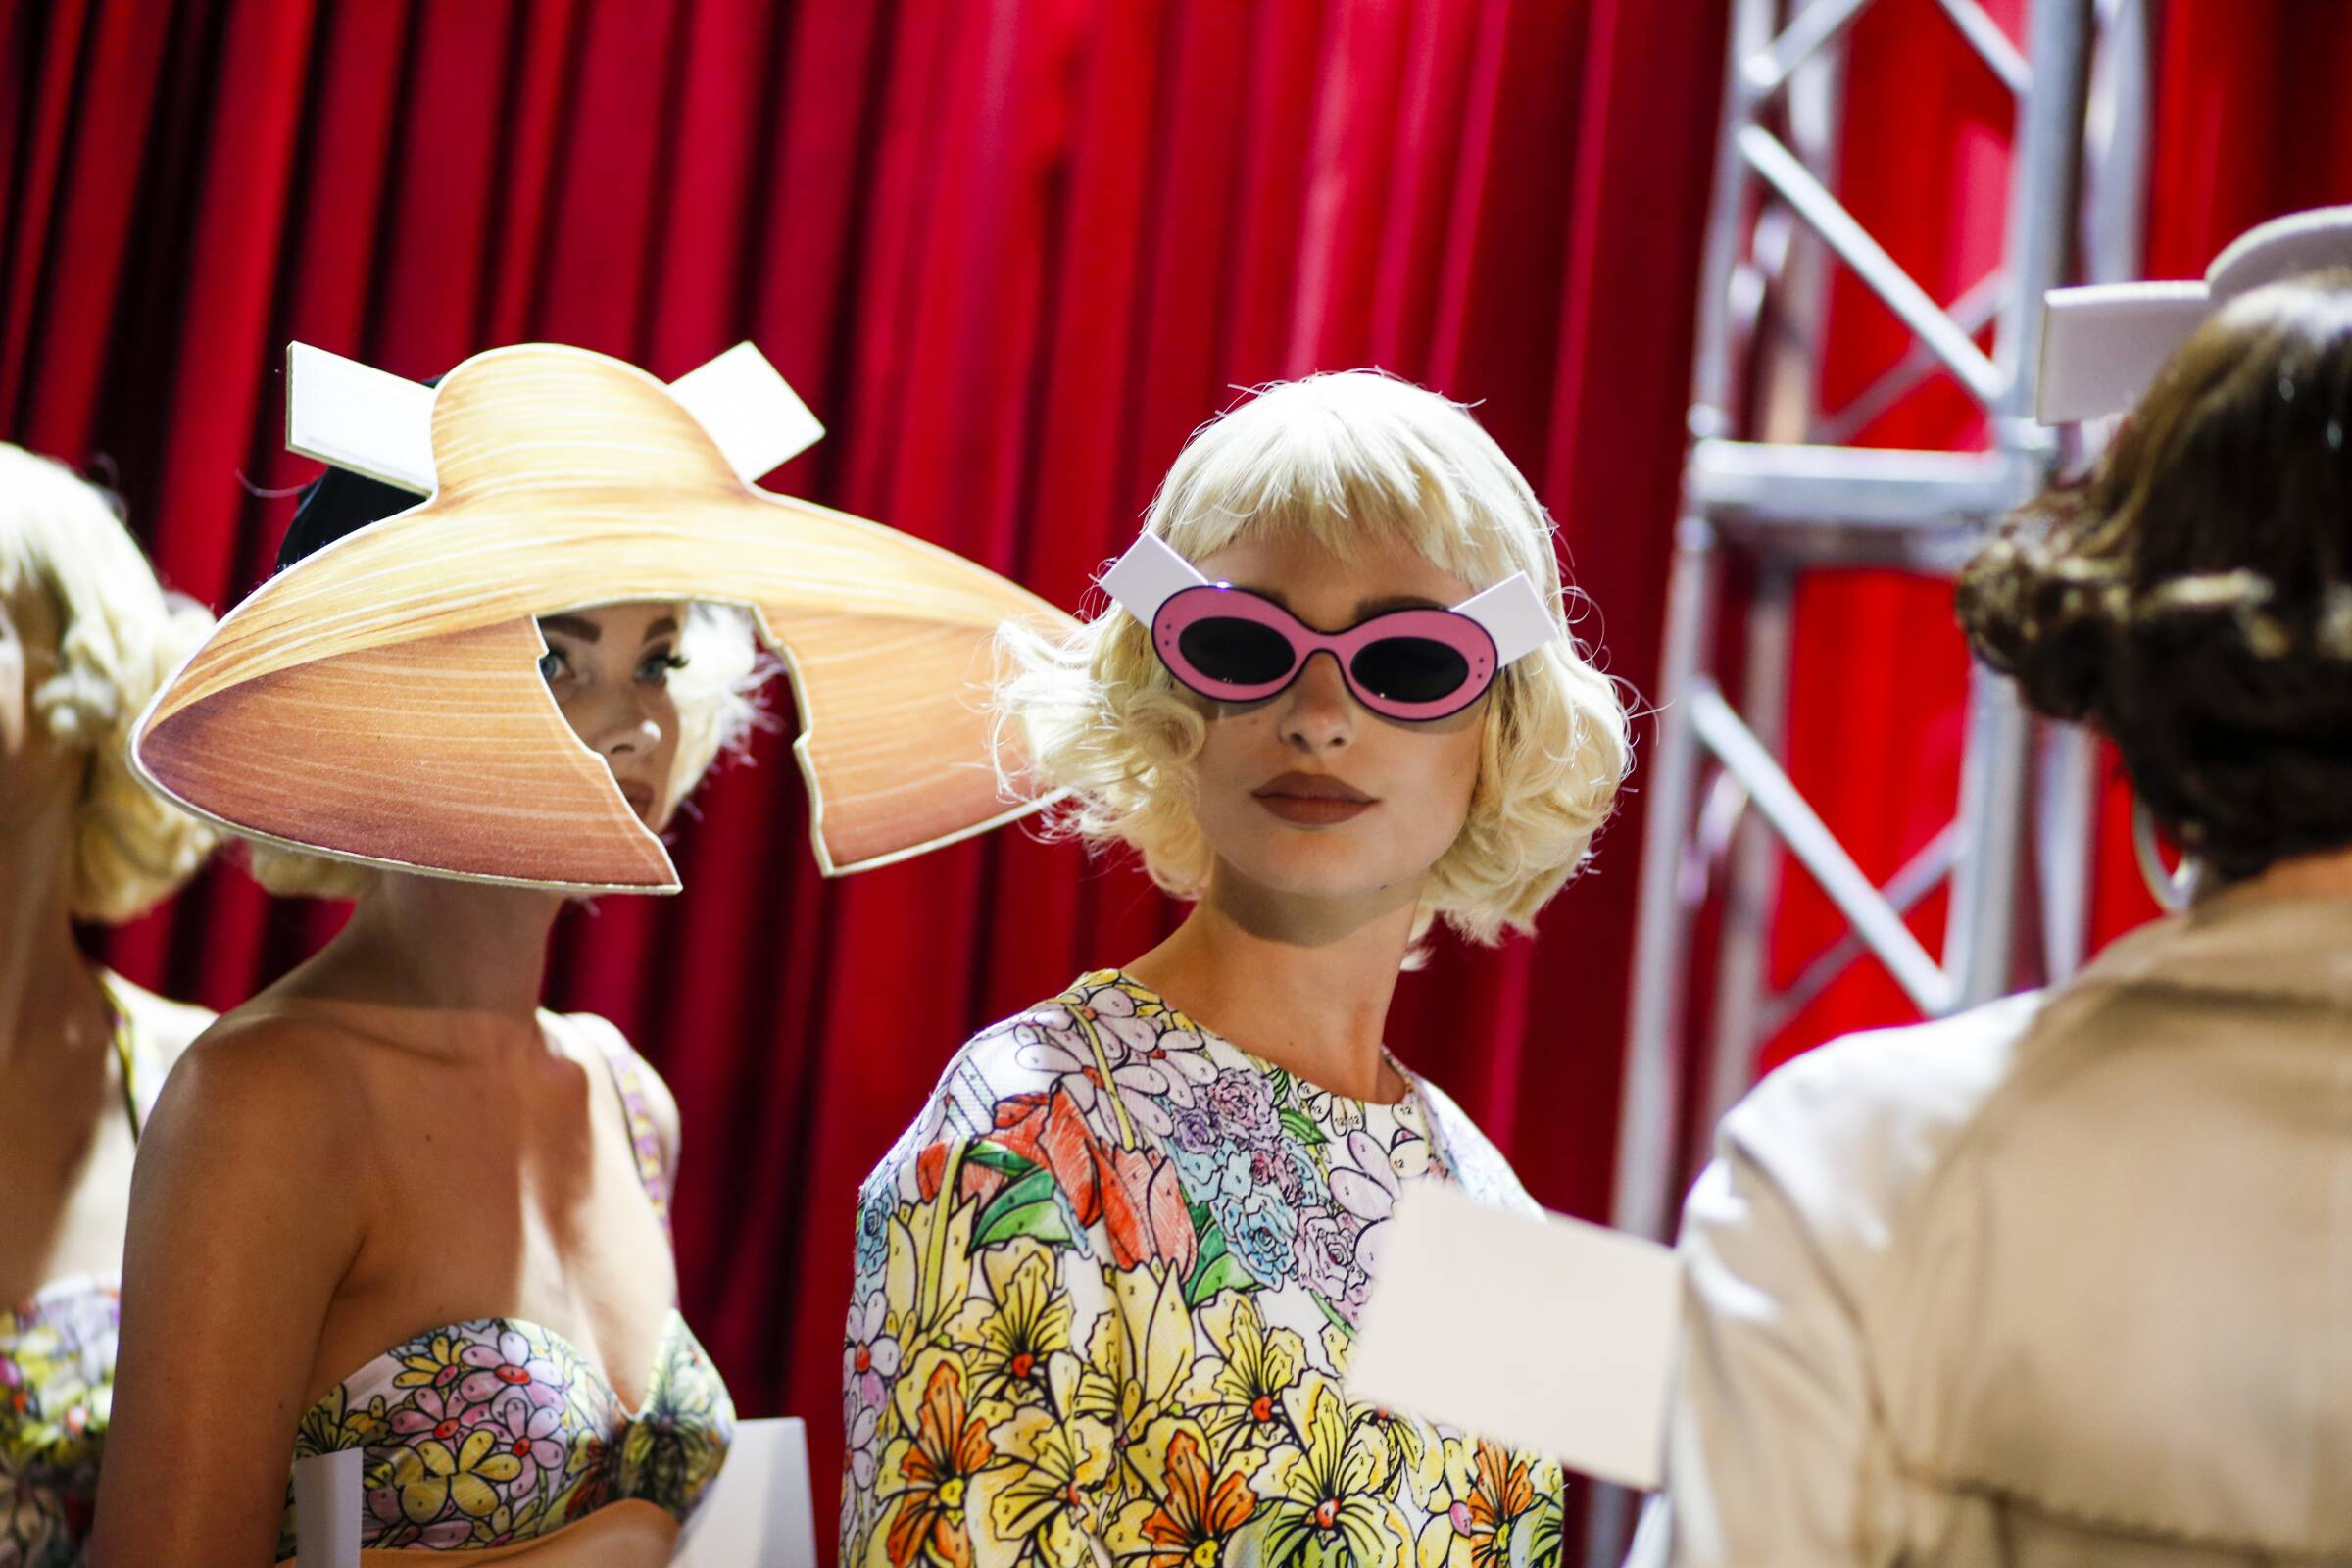 Backstage Moschino Fashion Model